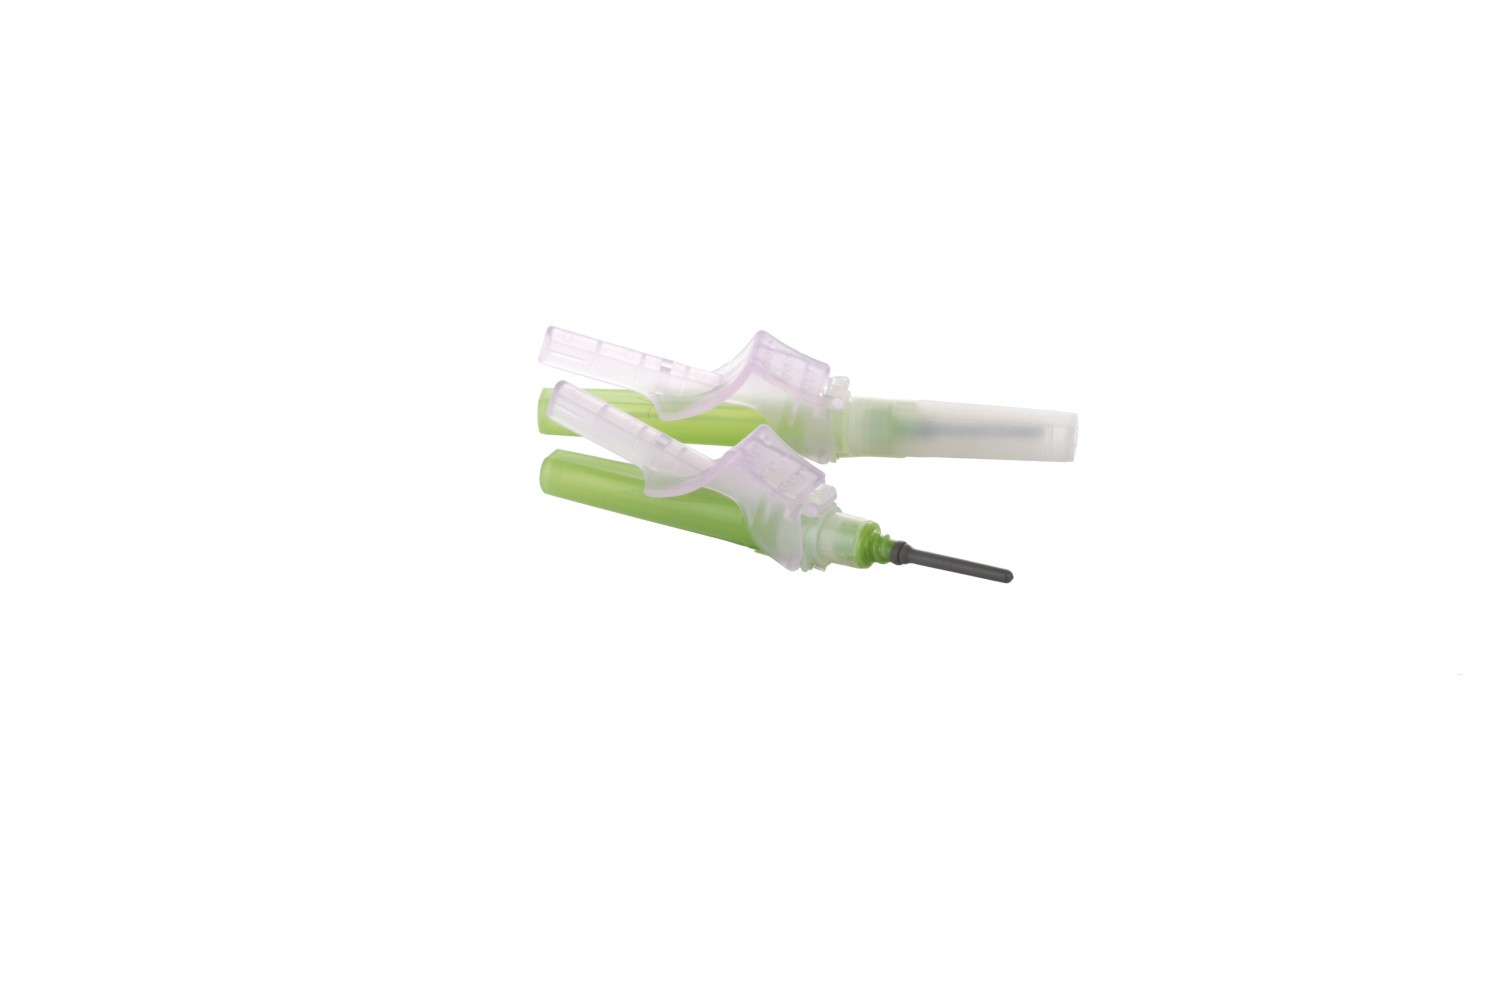 Vacutainer Eclipse Blood Collection Needle 21G Green x 48